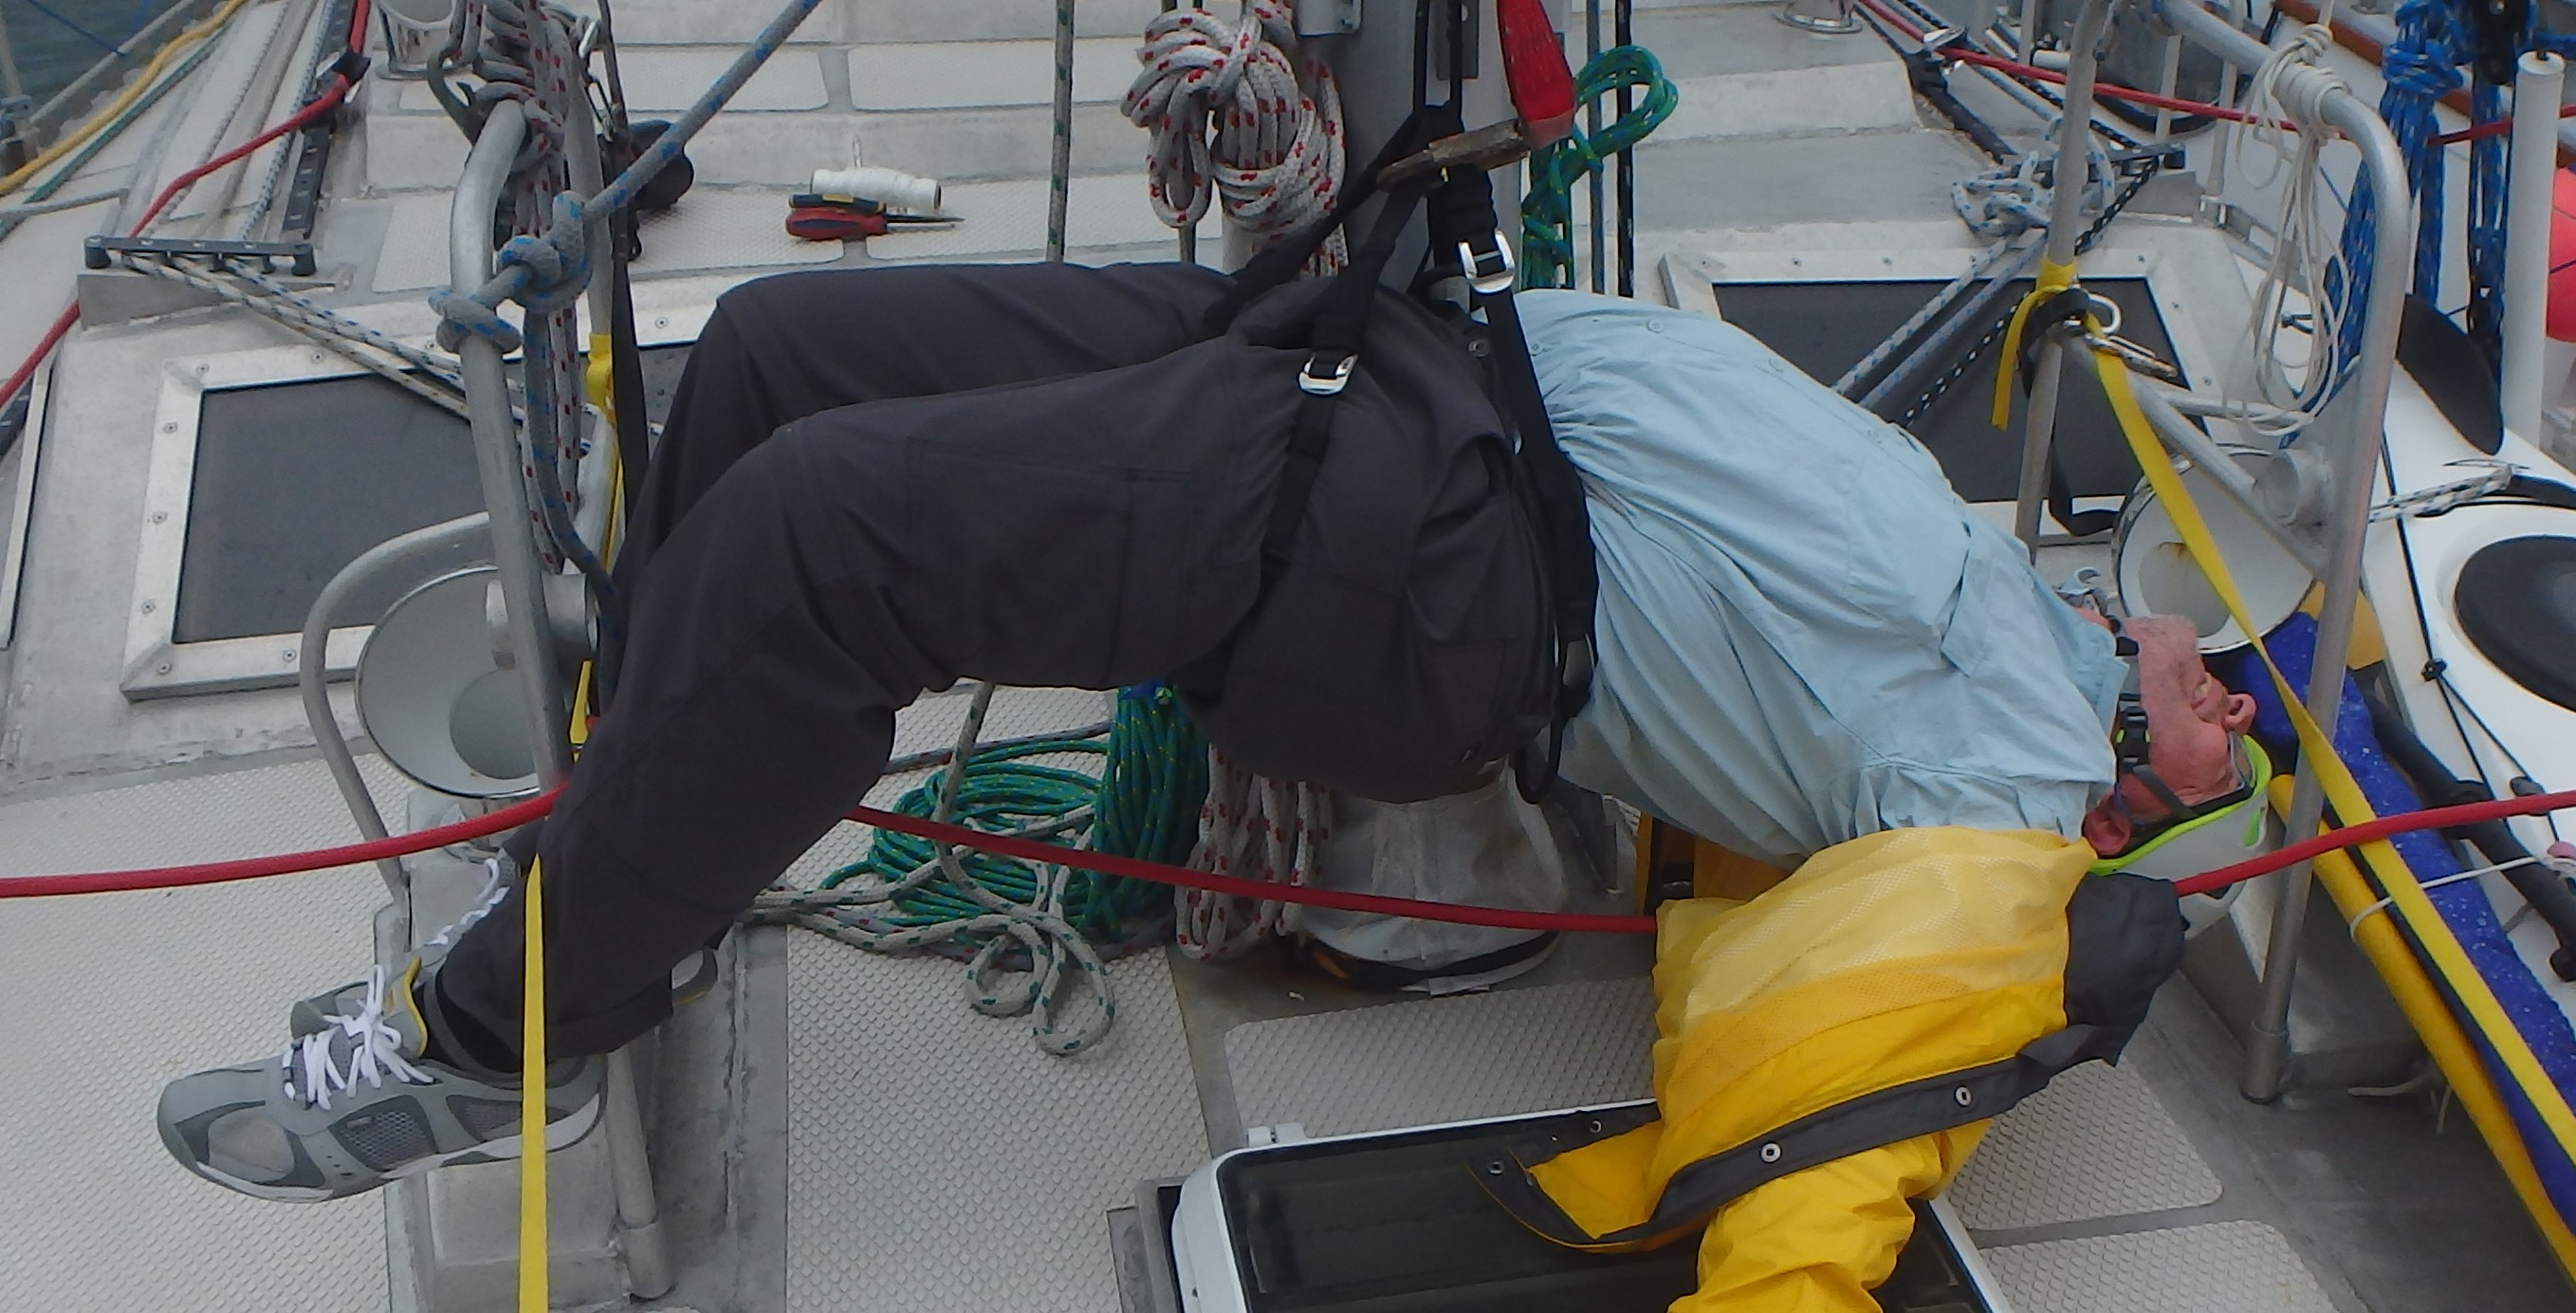 Going Aloft Accident Prevention Voyageur Sailing Boat Wiring Job School Adventures Canada